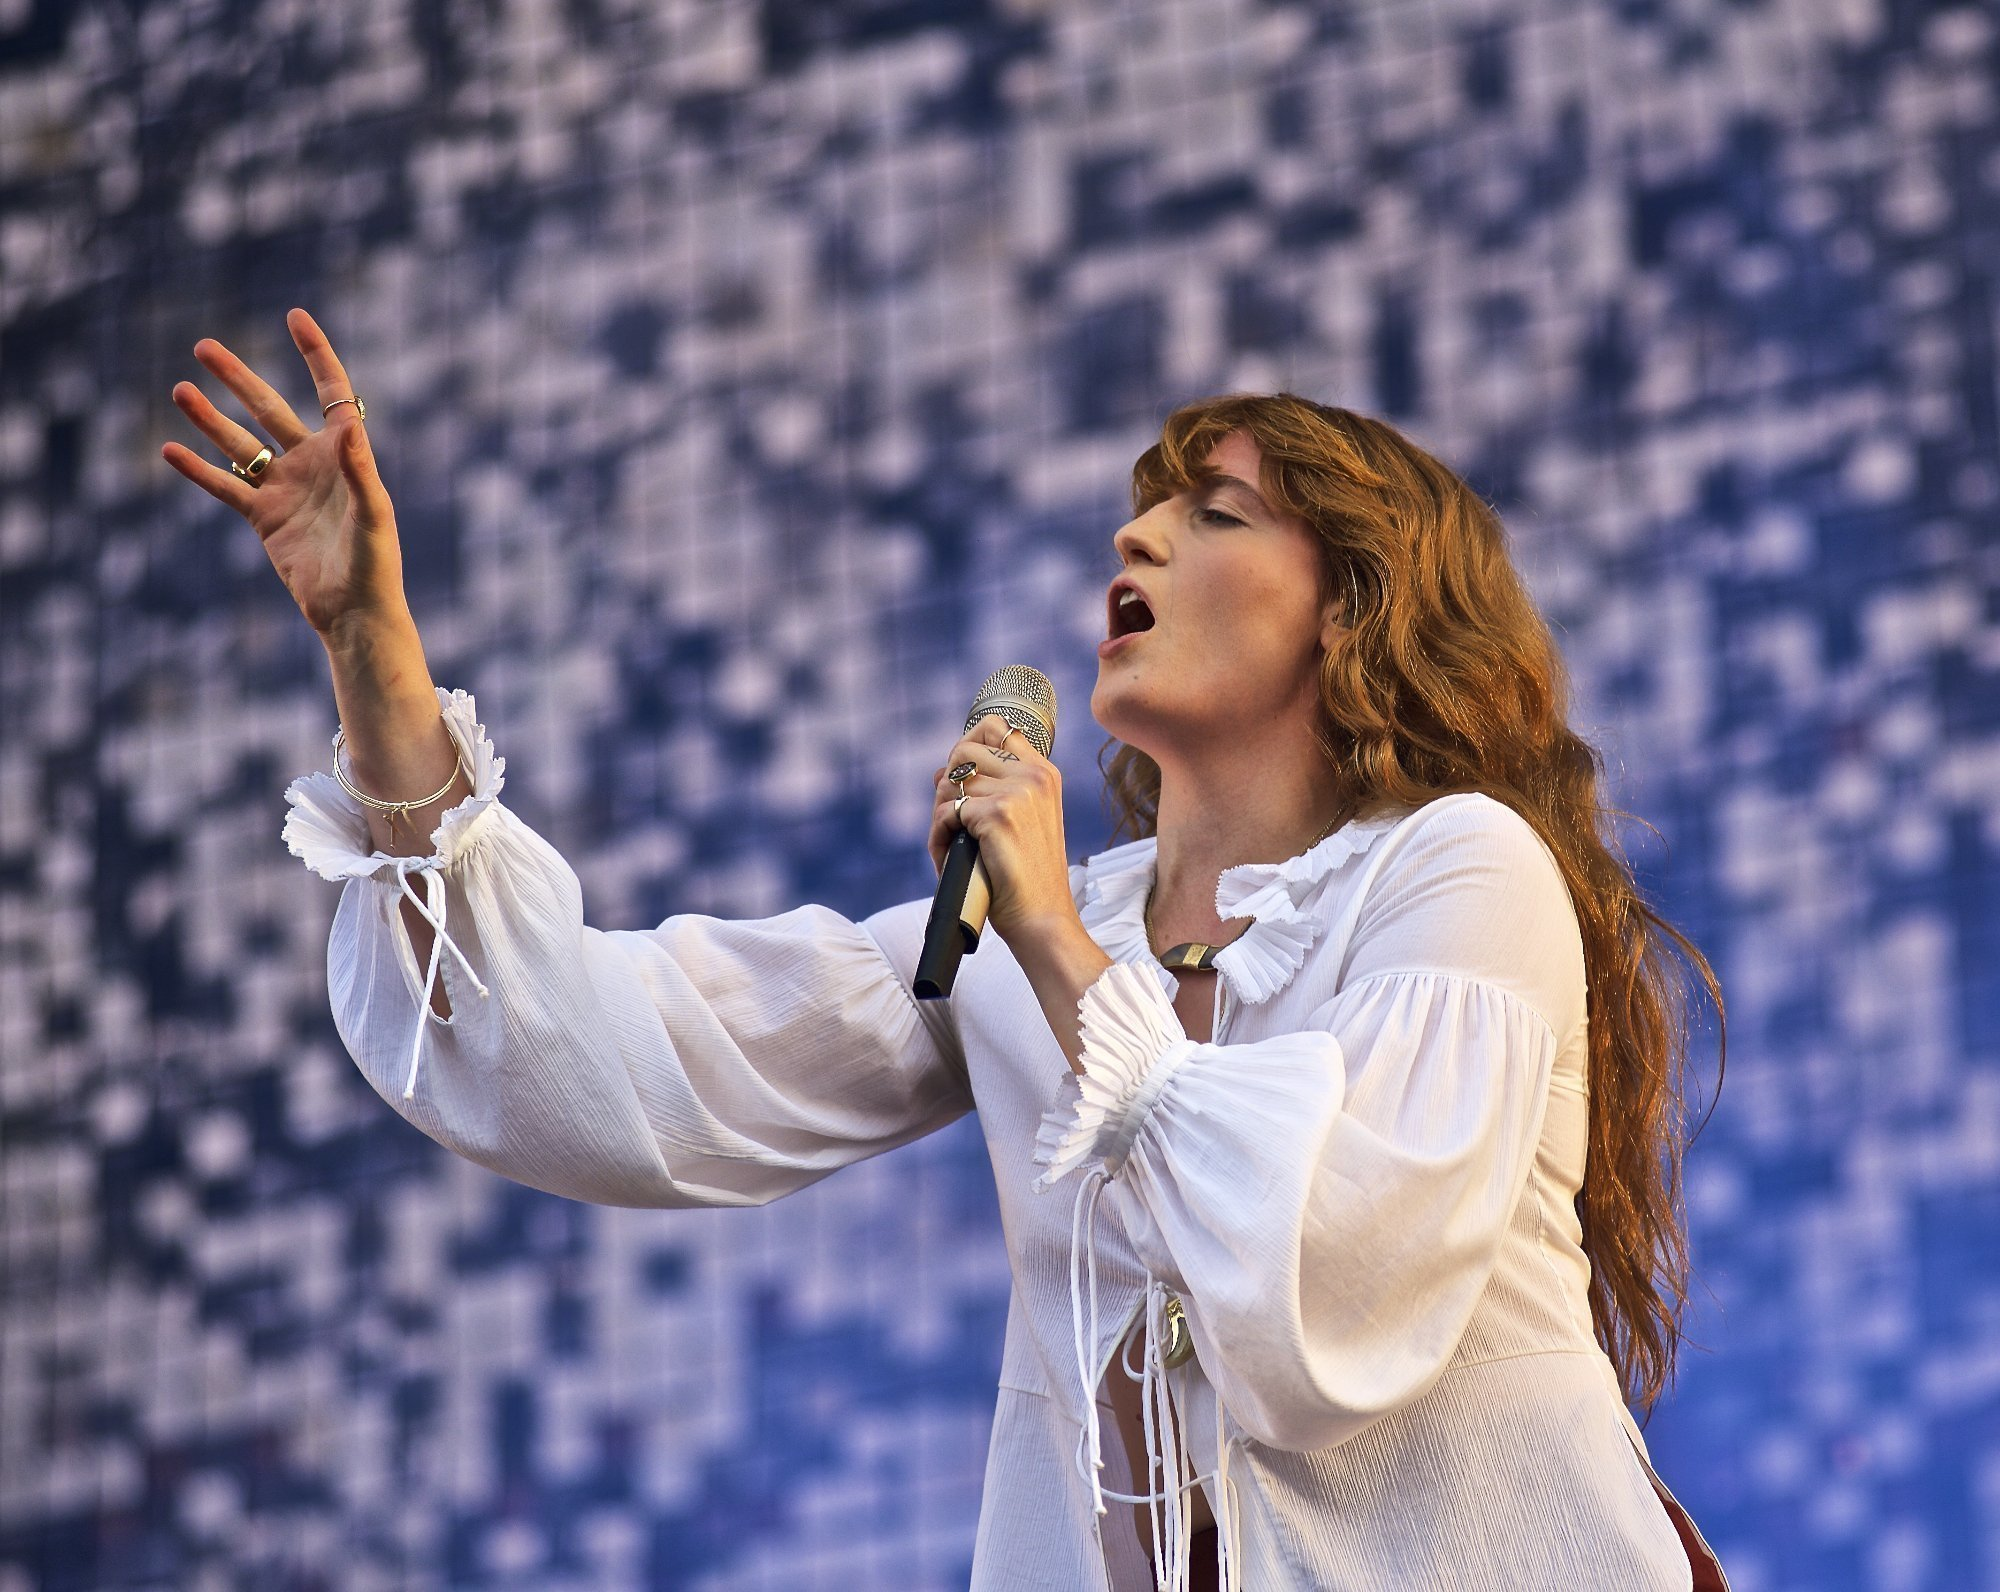 florence and the machine san diego